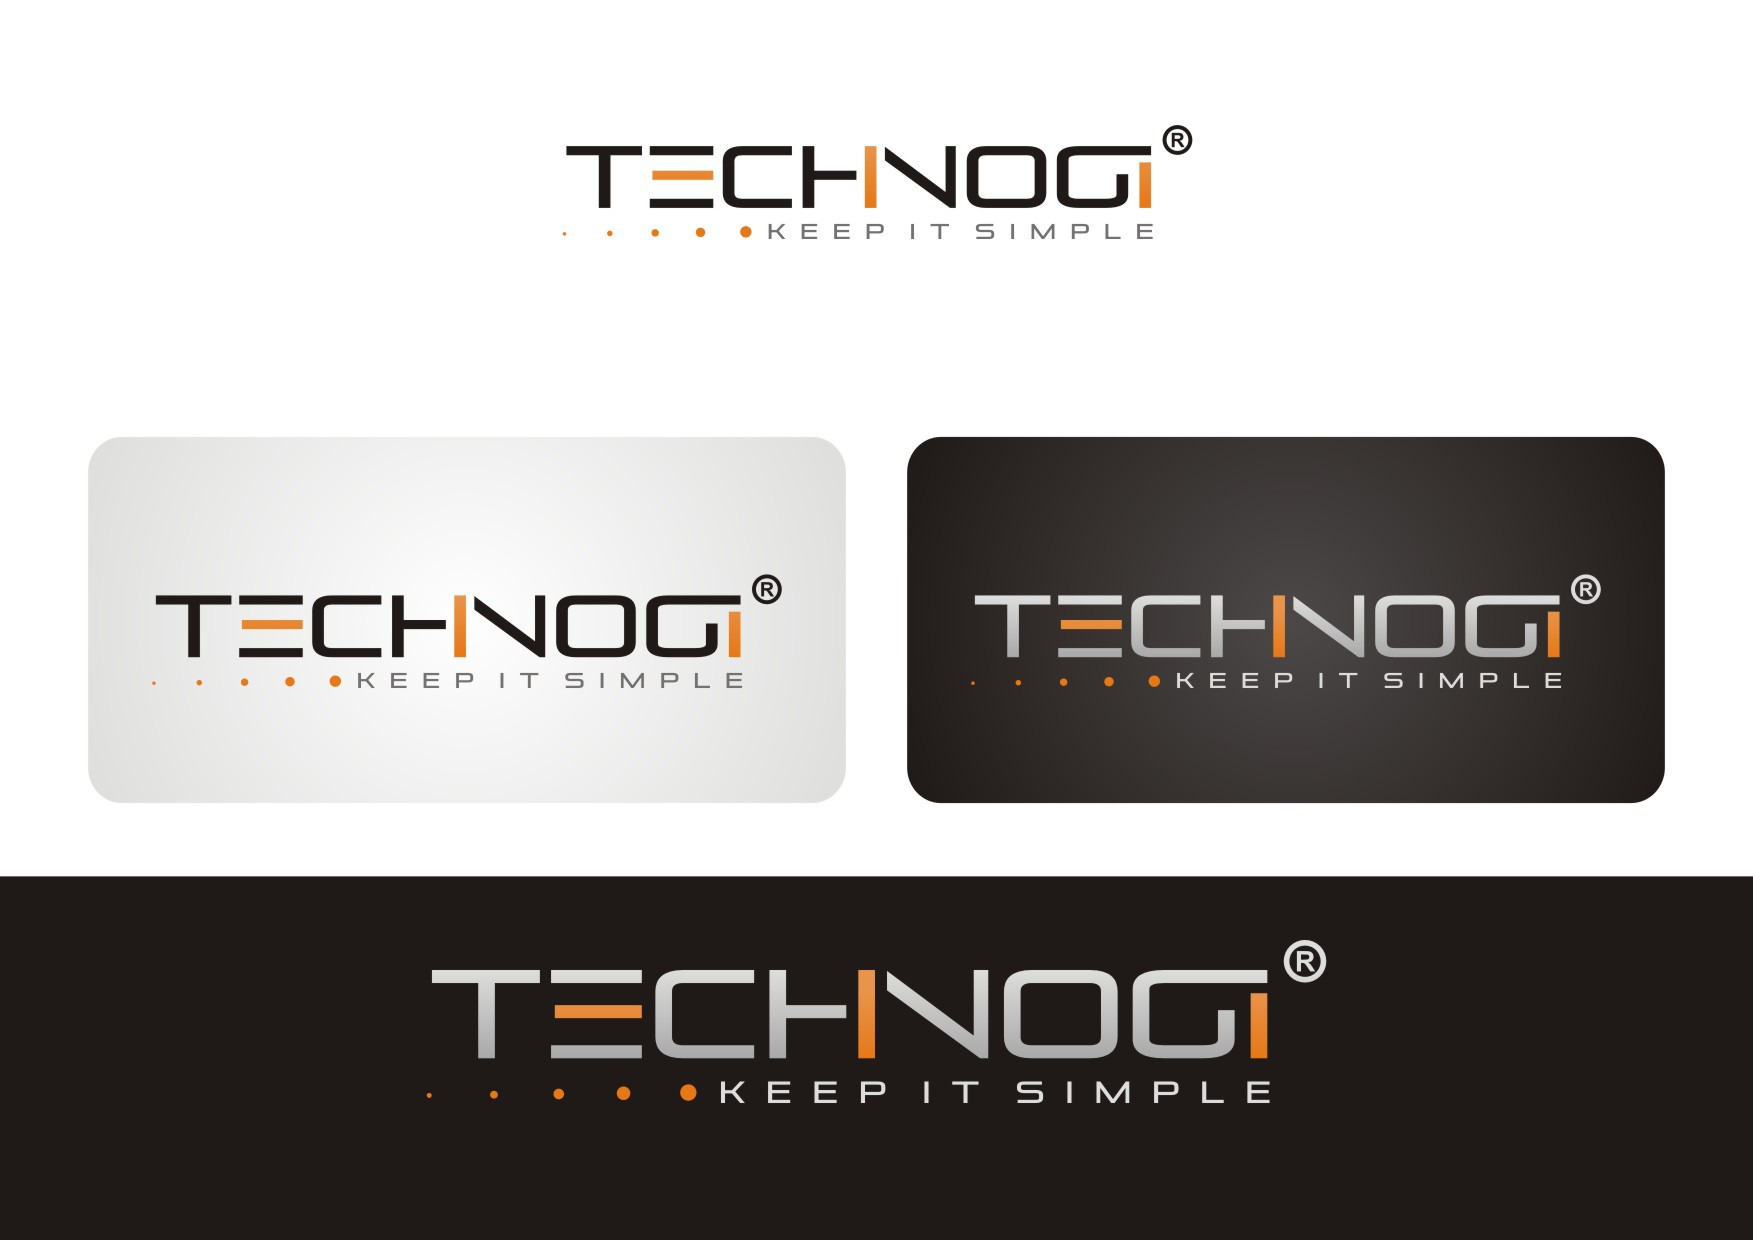 Technogi needs a new logo